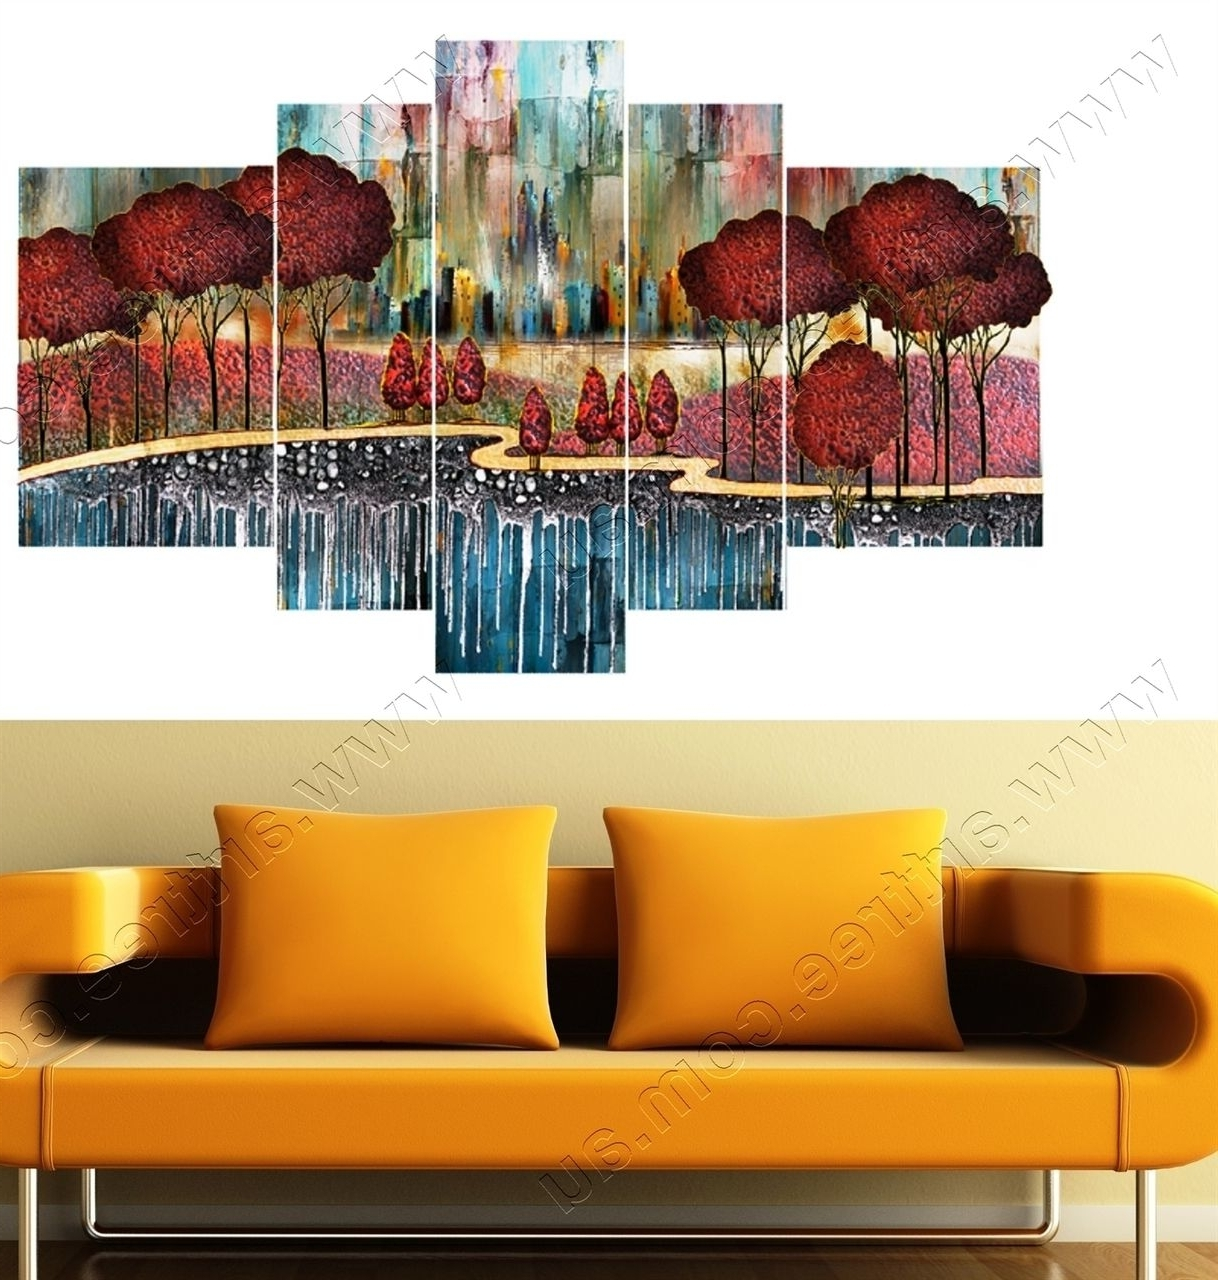 Gold Coast Canvas Wall Art Throughout Famous Red Trees Wall Art Prints Gold Coast – Perfect For Any Decor! (Gallery 7 of 15)